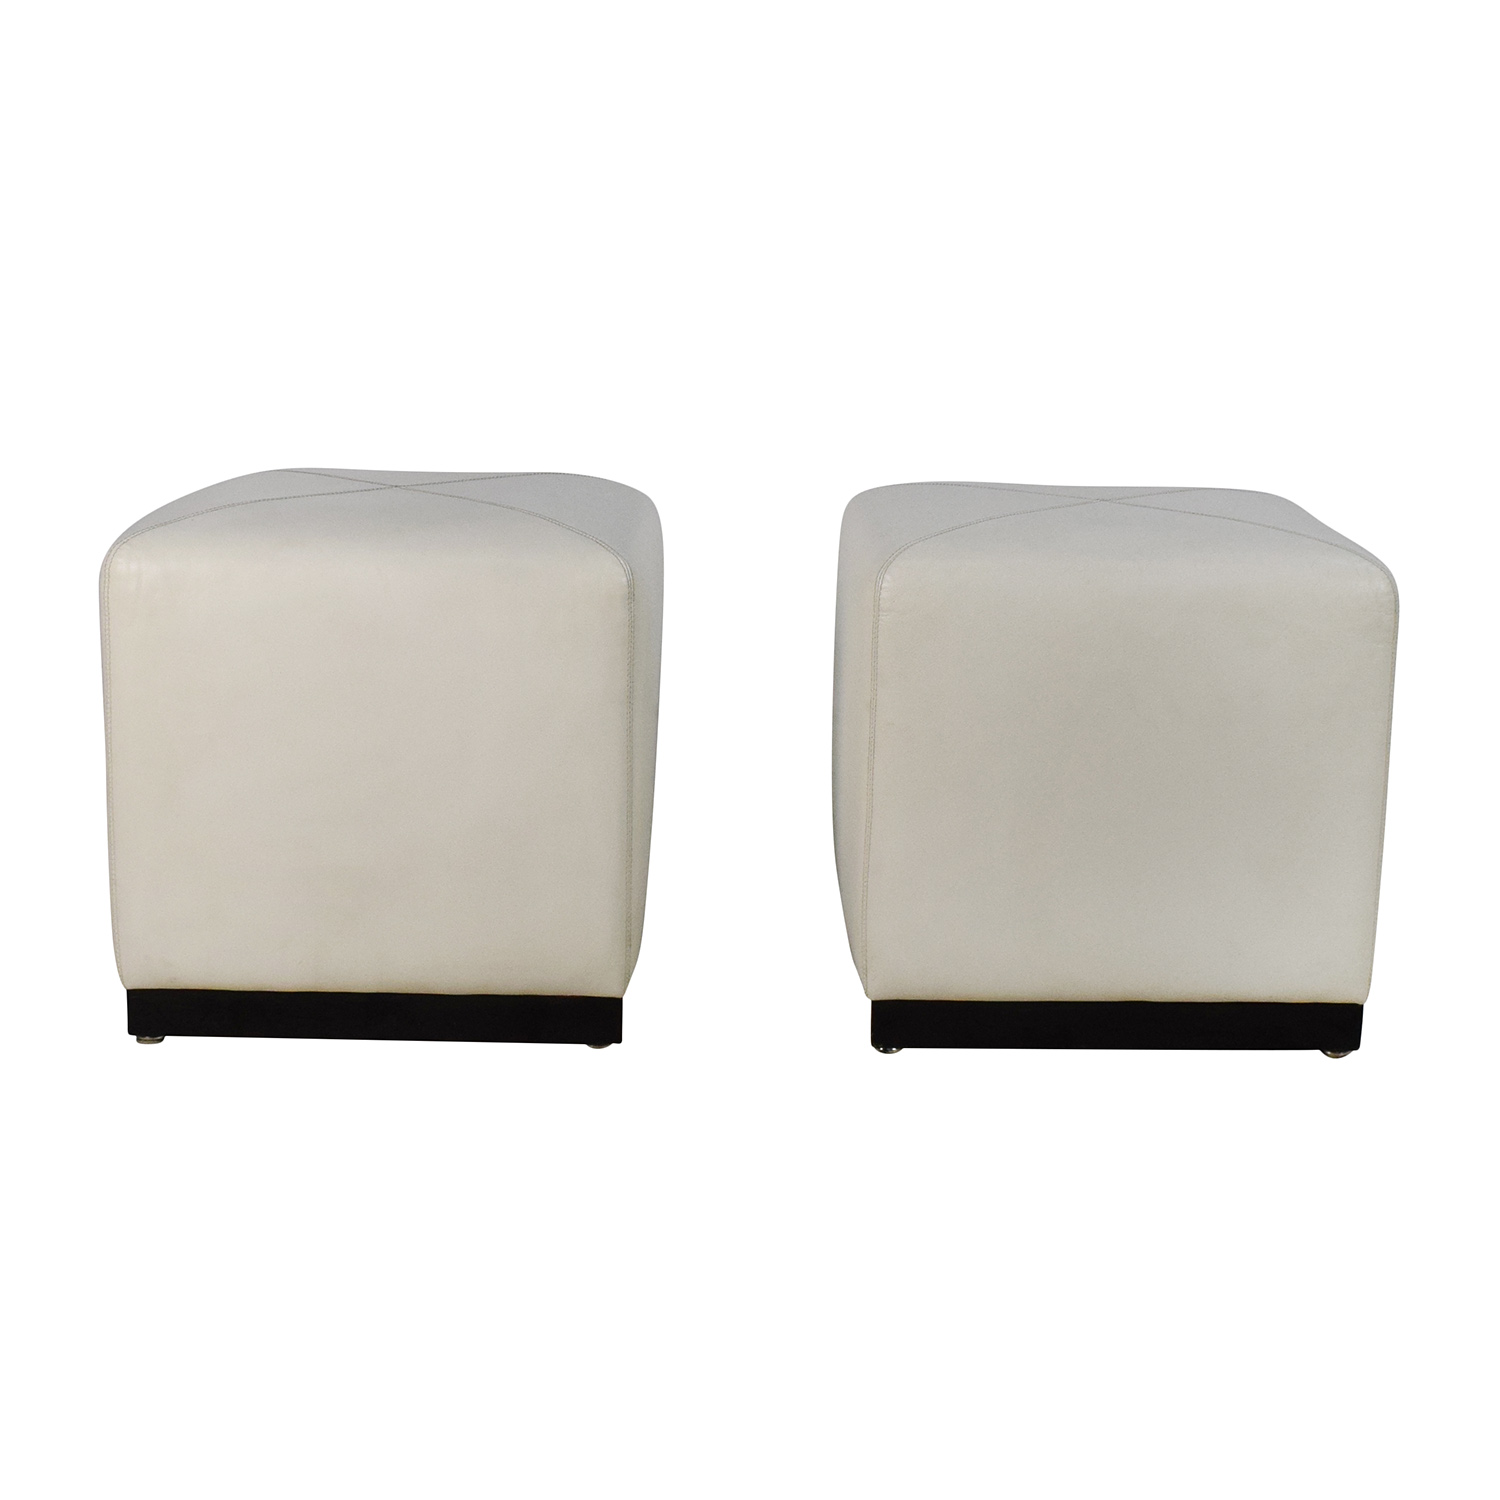 Pair Of White Leather Ottoman Cubes Price